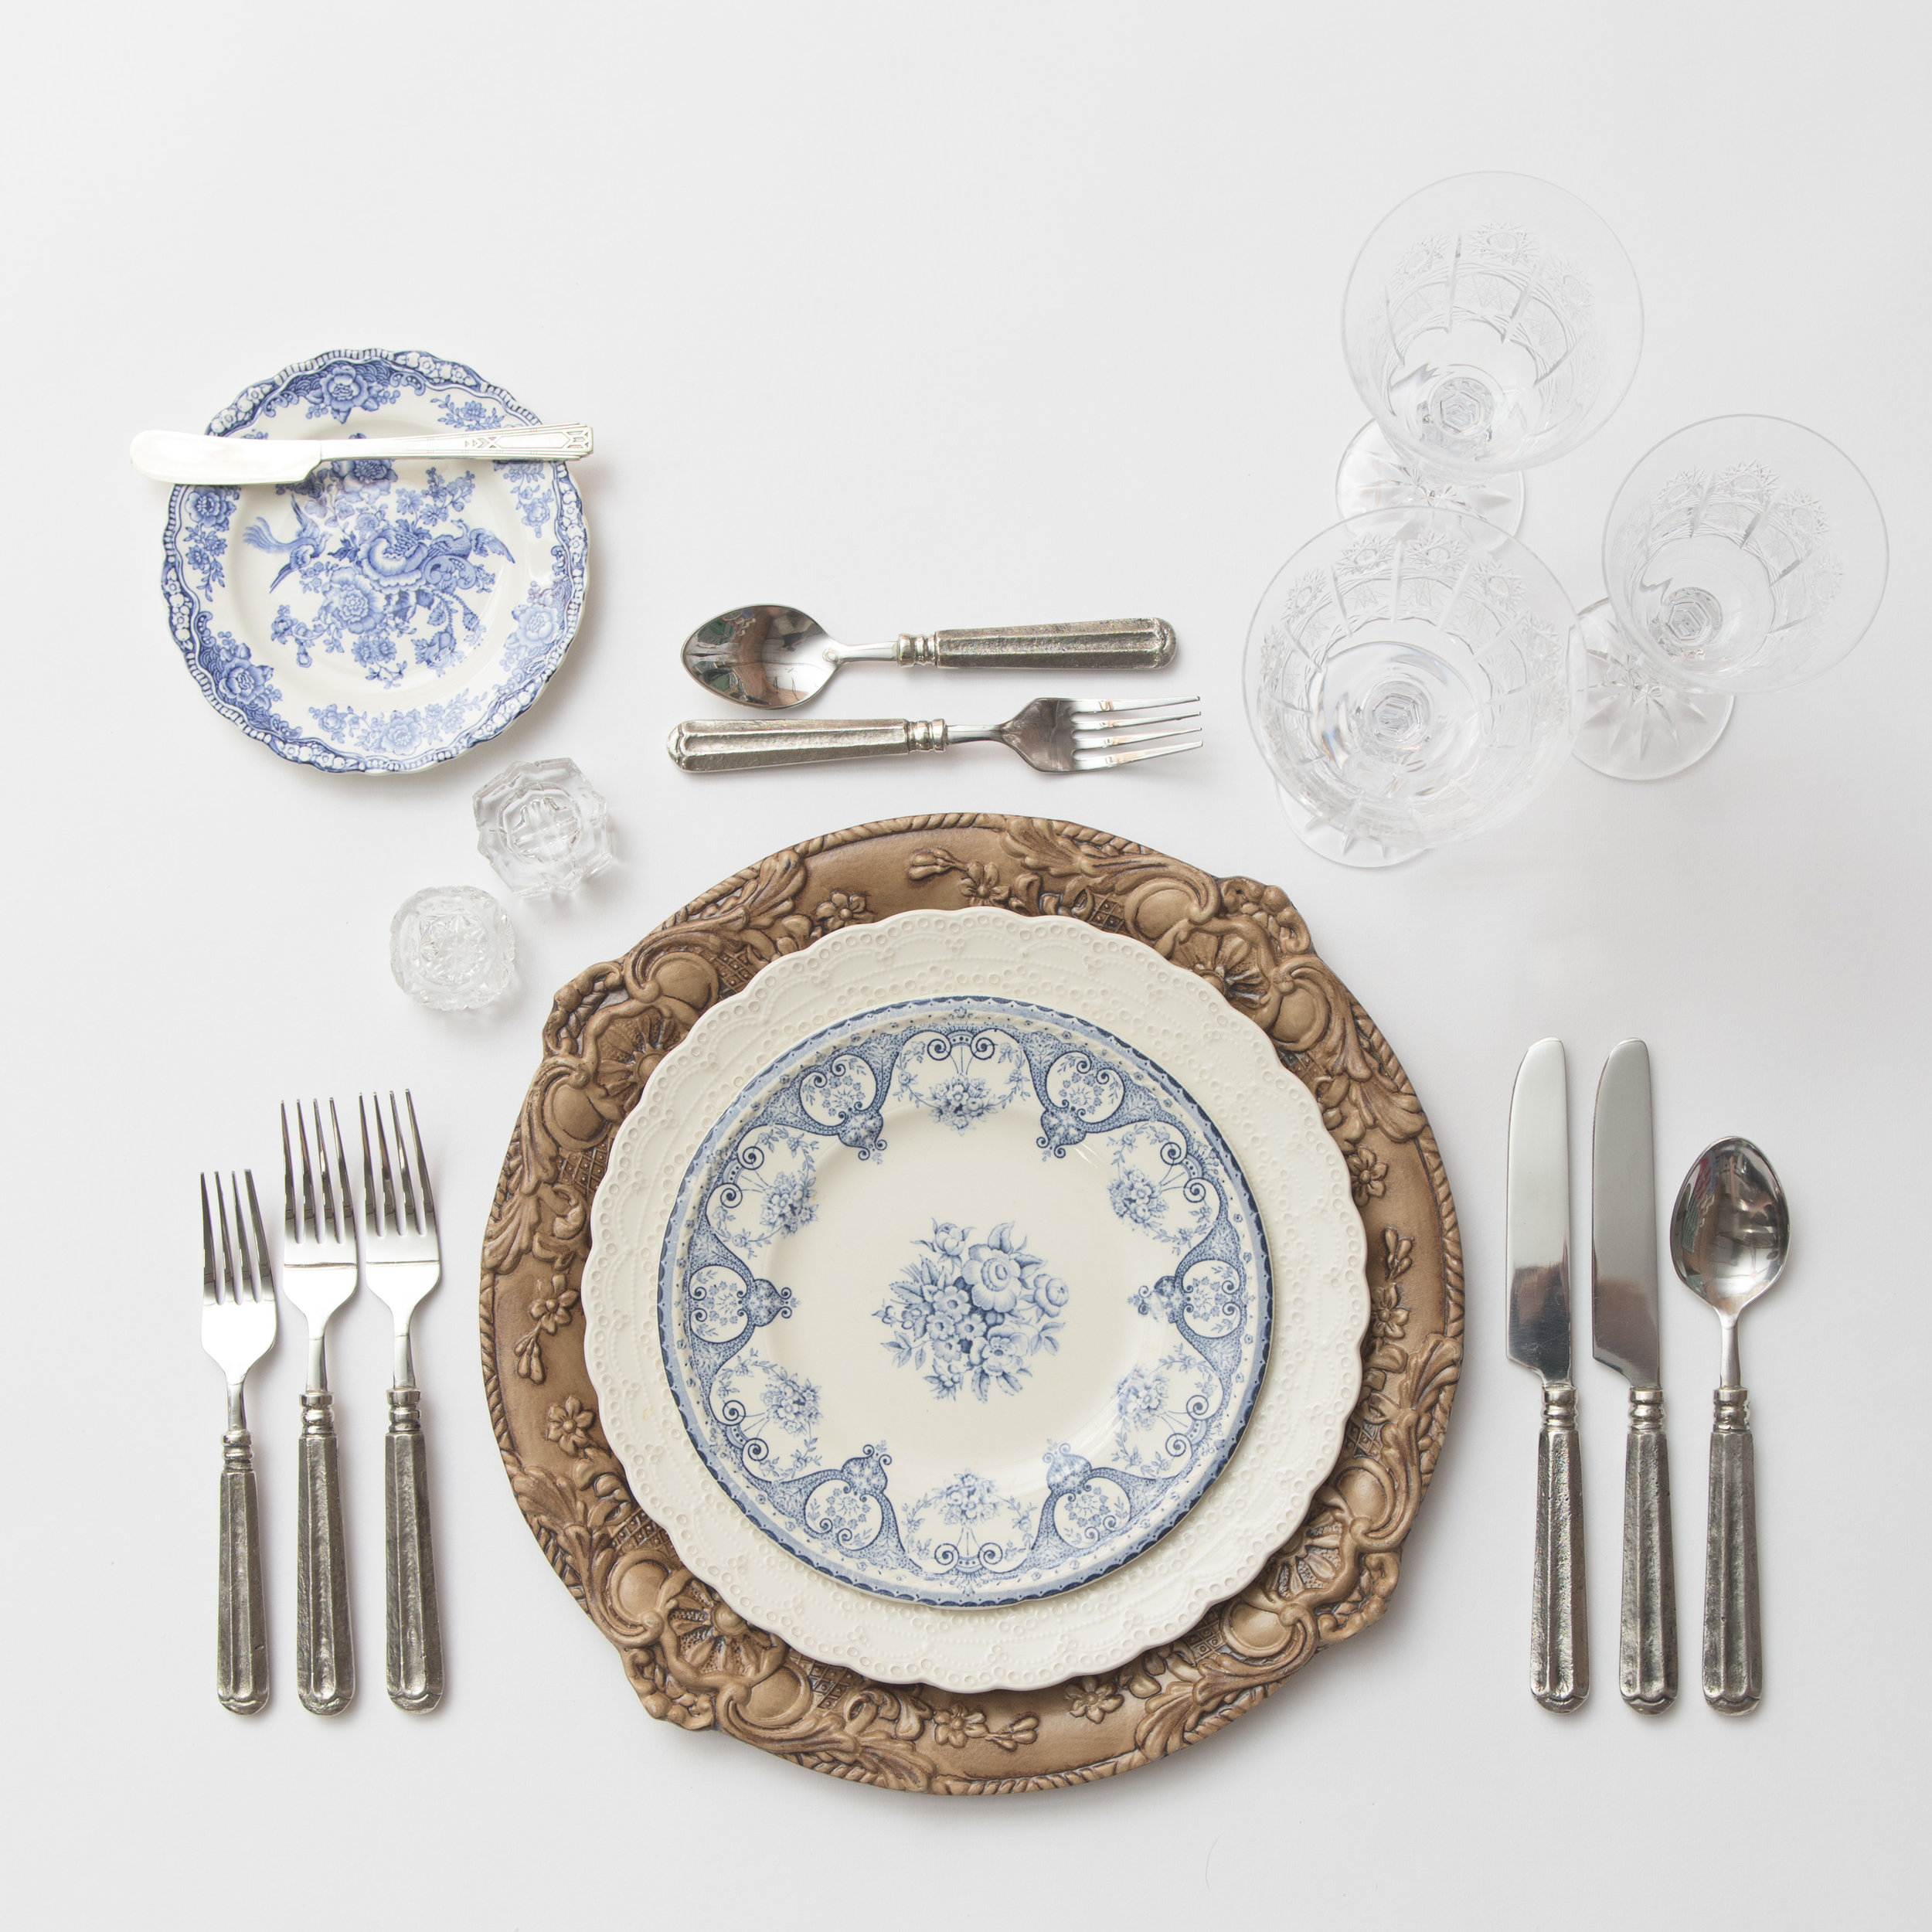 RENT: Verona Chargers in Walnut + White Collection Vintage China + Blue Garden Collection Vintage China + Tuscan Flatware in Pewter + Czech Crystal Stemware + Antique Crystal Salt Cellars  SHOP: Verona Chargers in Walnut